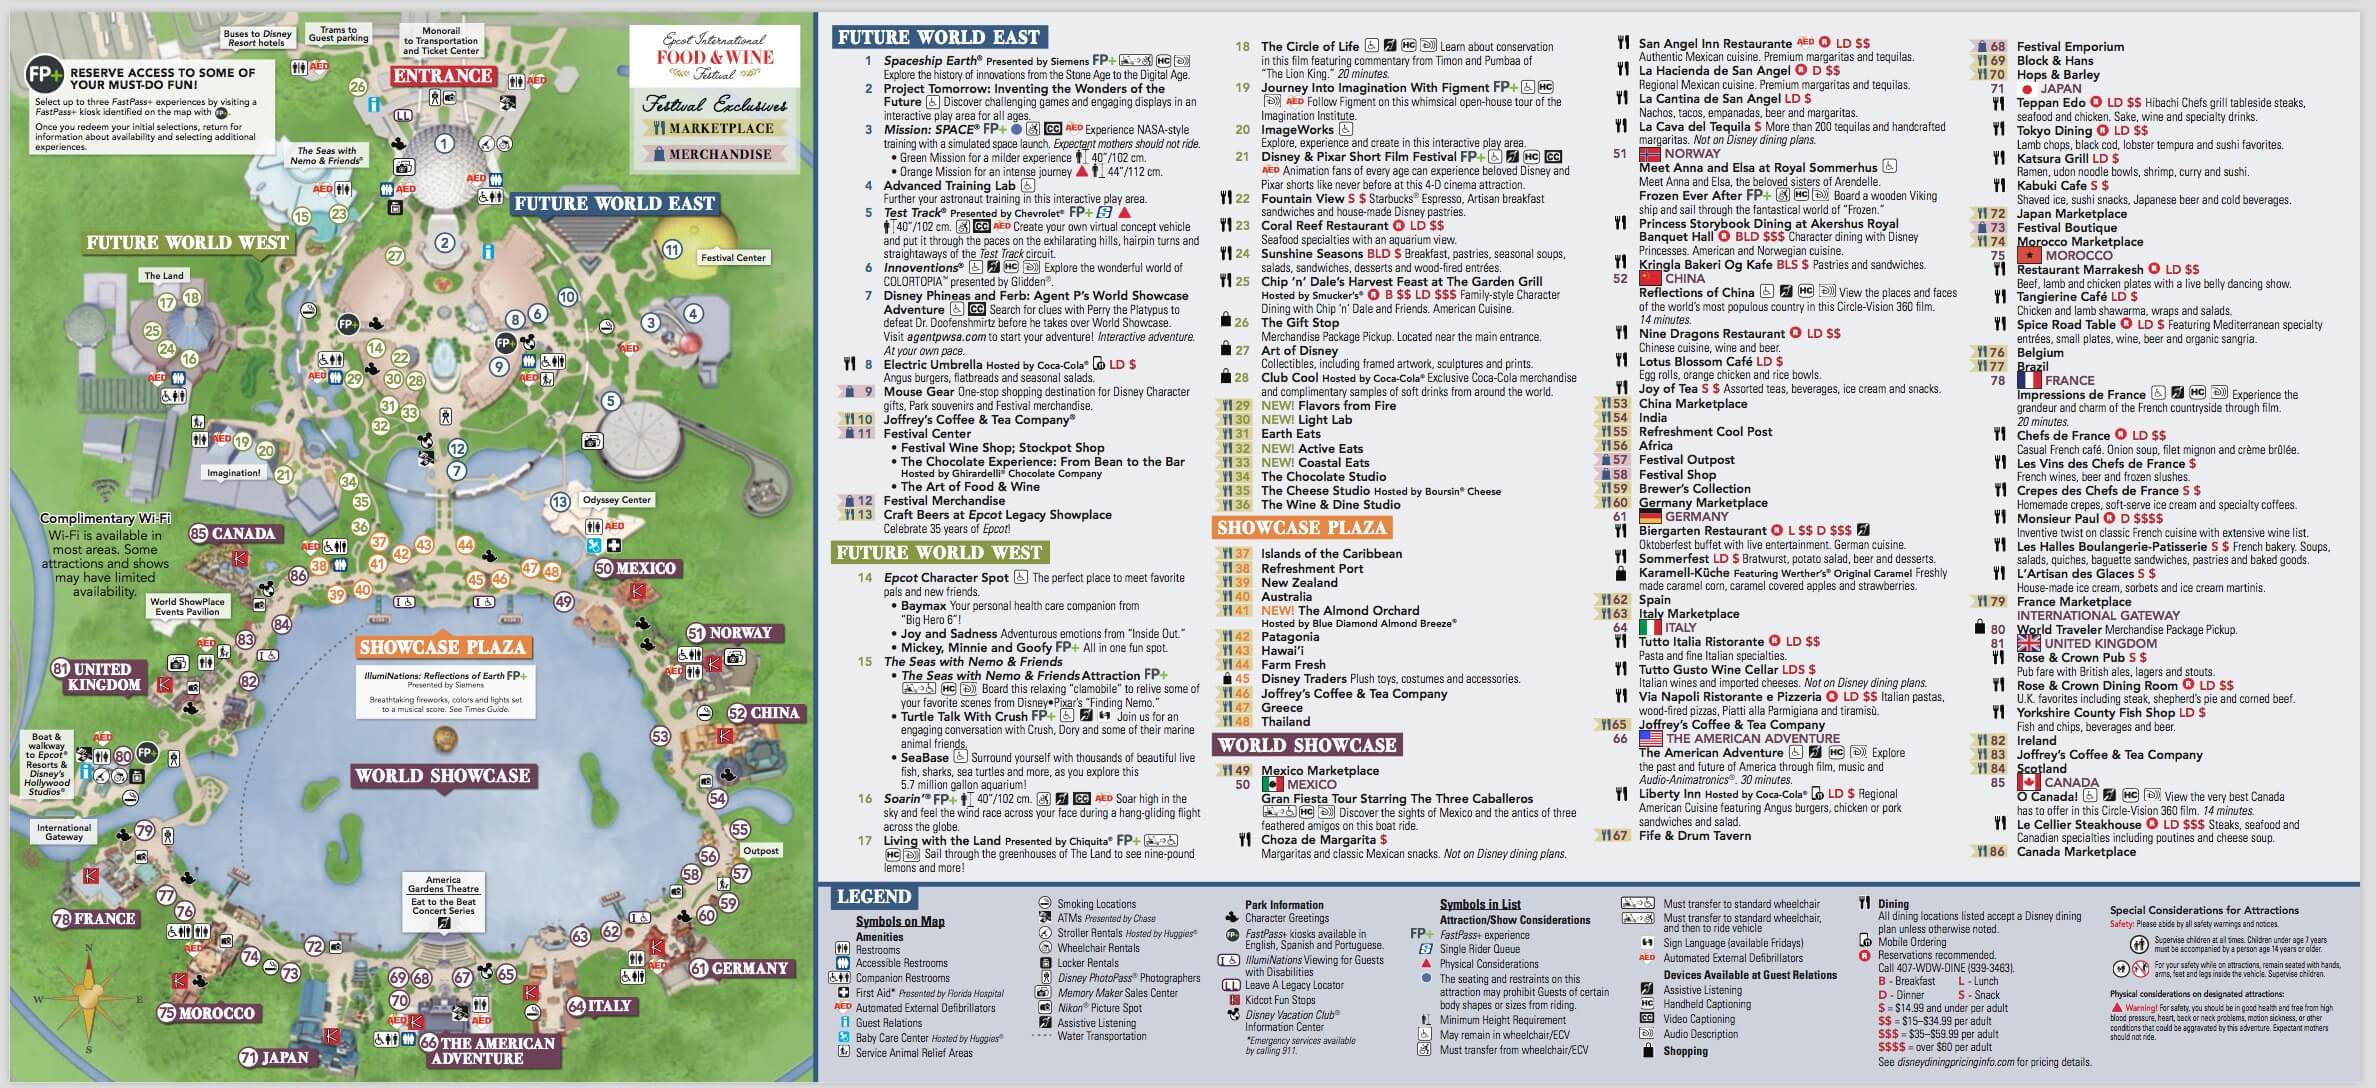 Epcot Food and Wine Festival 2017 - Epcot Food and Wine Map - Side Two